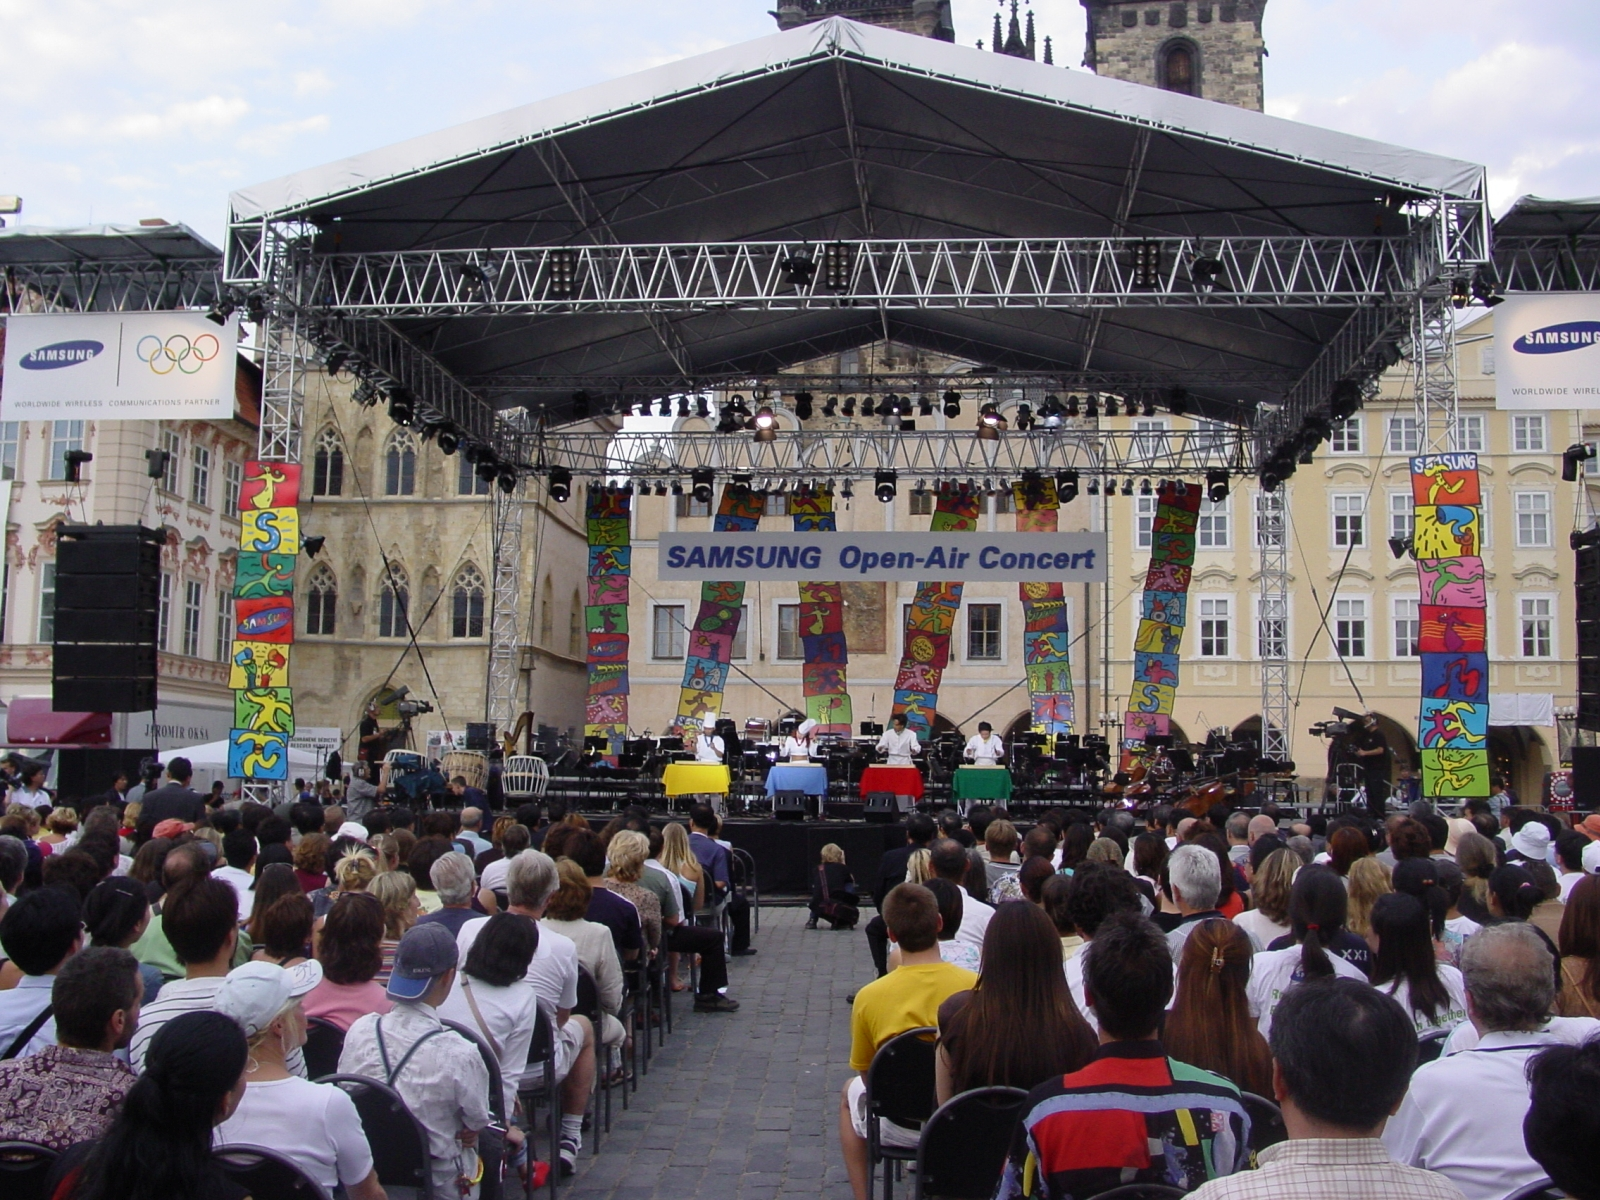 SAMSUNG Open – Air Concert 2003